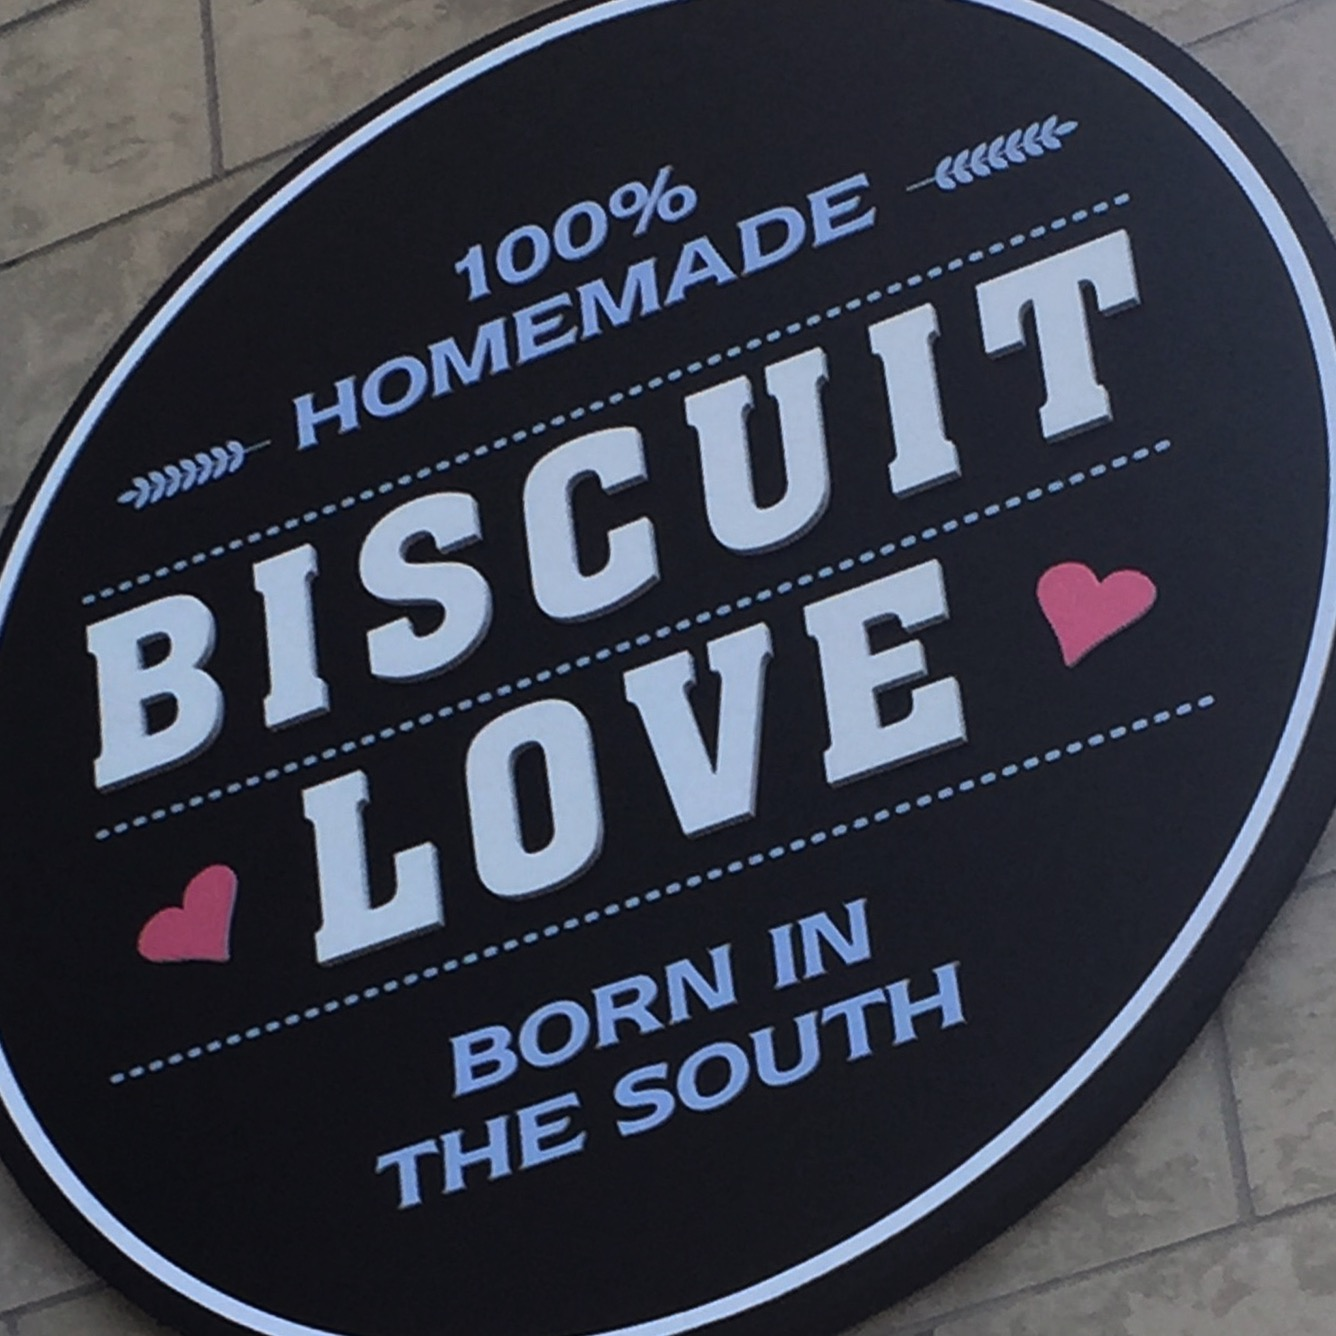 Biscuit Love - Opening in Nashville's Gulch neighborhood in early 2015